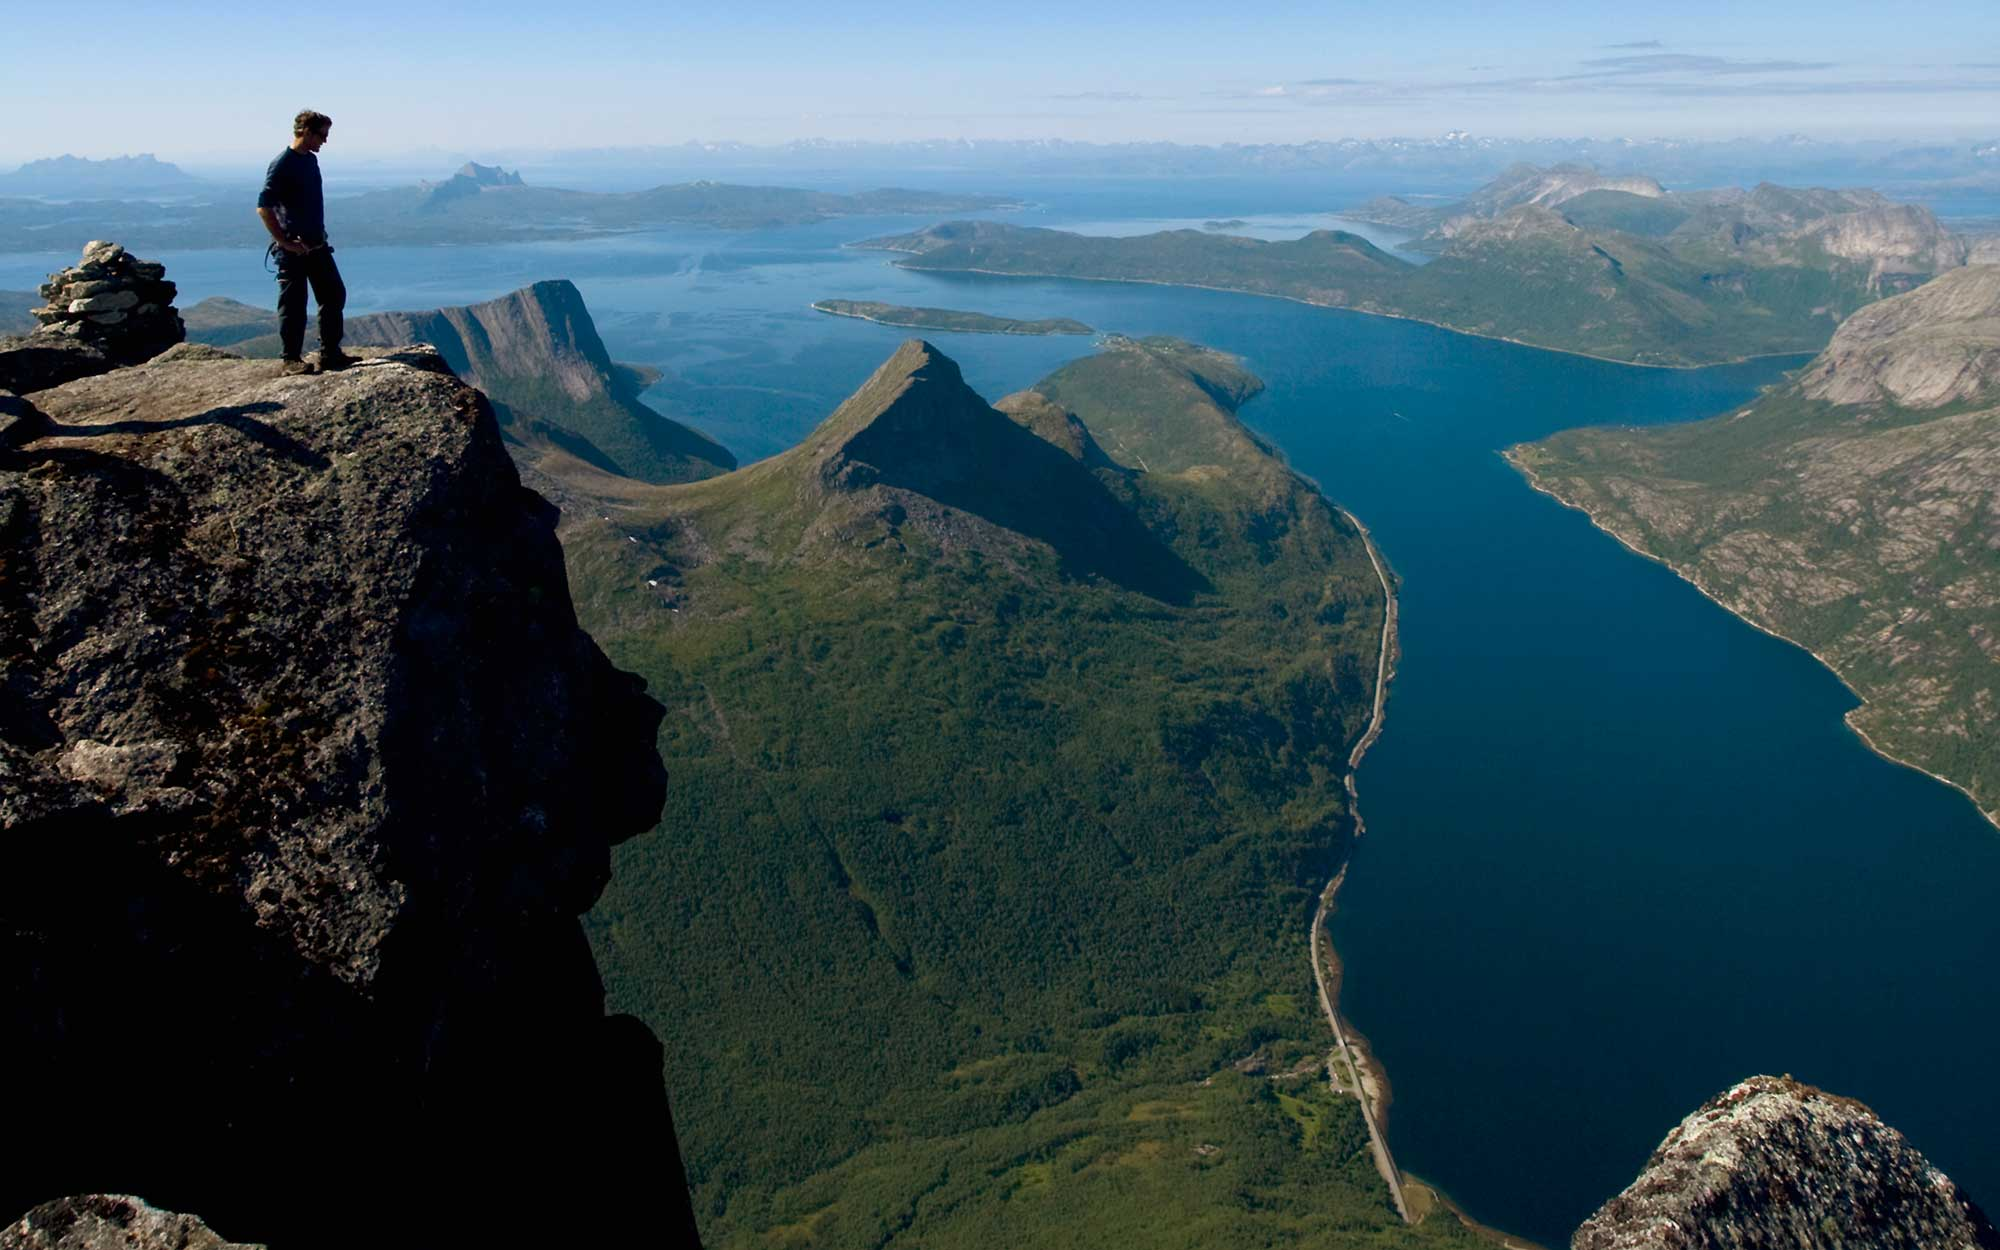 Watch A Hiker Attempt A Death-Defying Climb Down A Norwegian Mountain